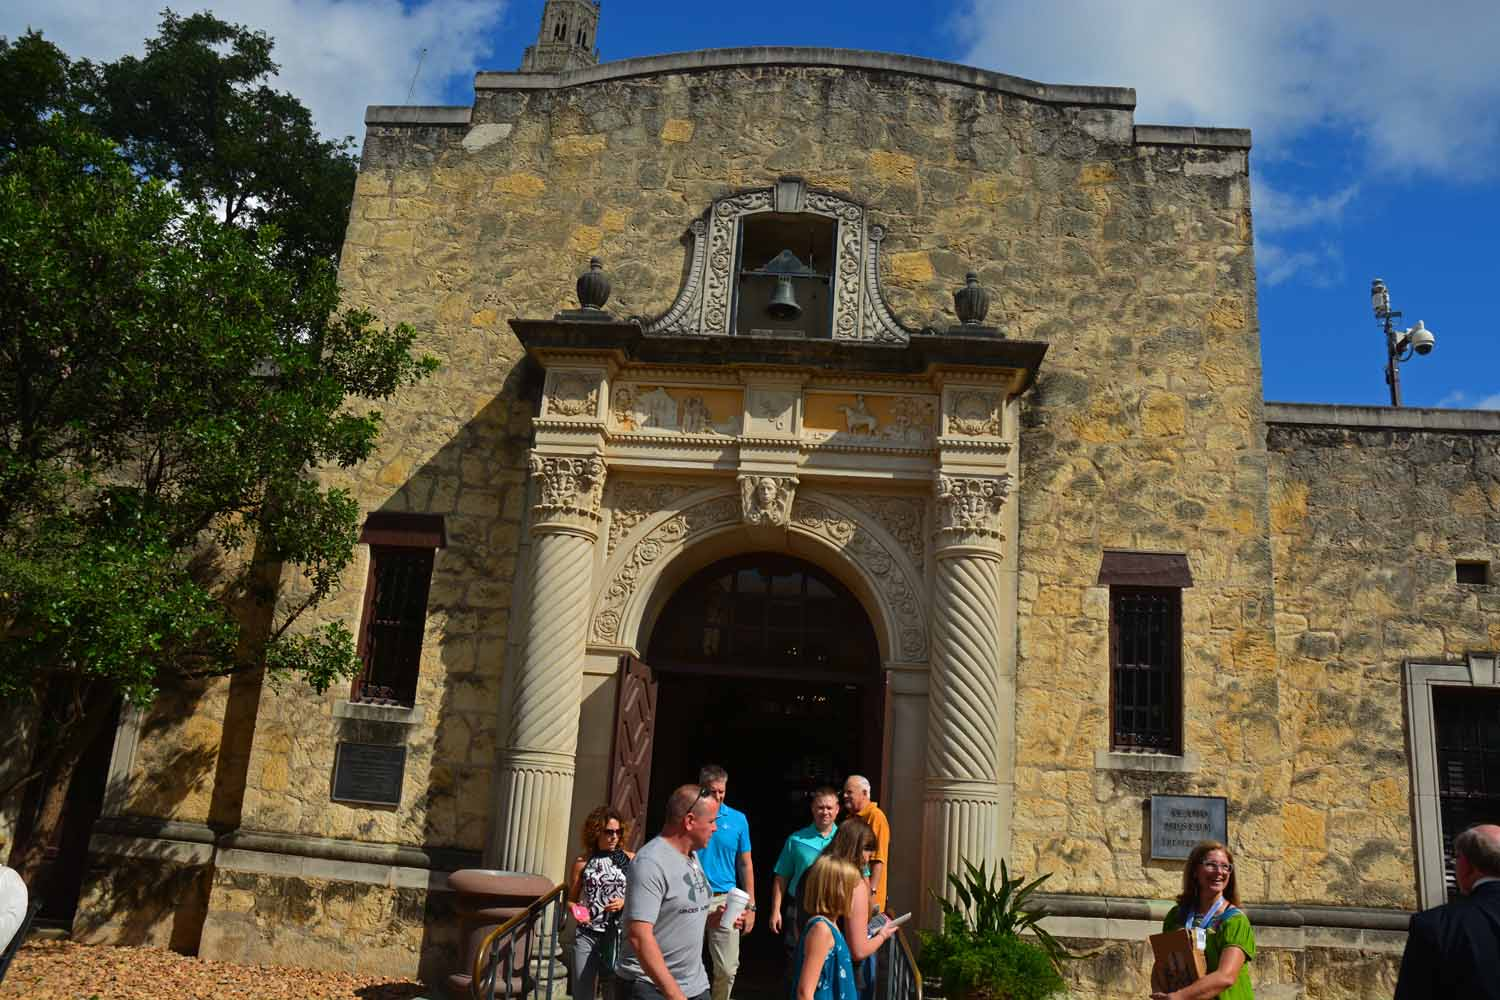 The Alamo Mission has withstood the test of time...